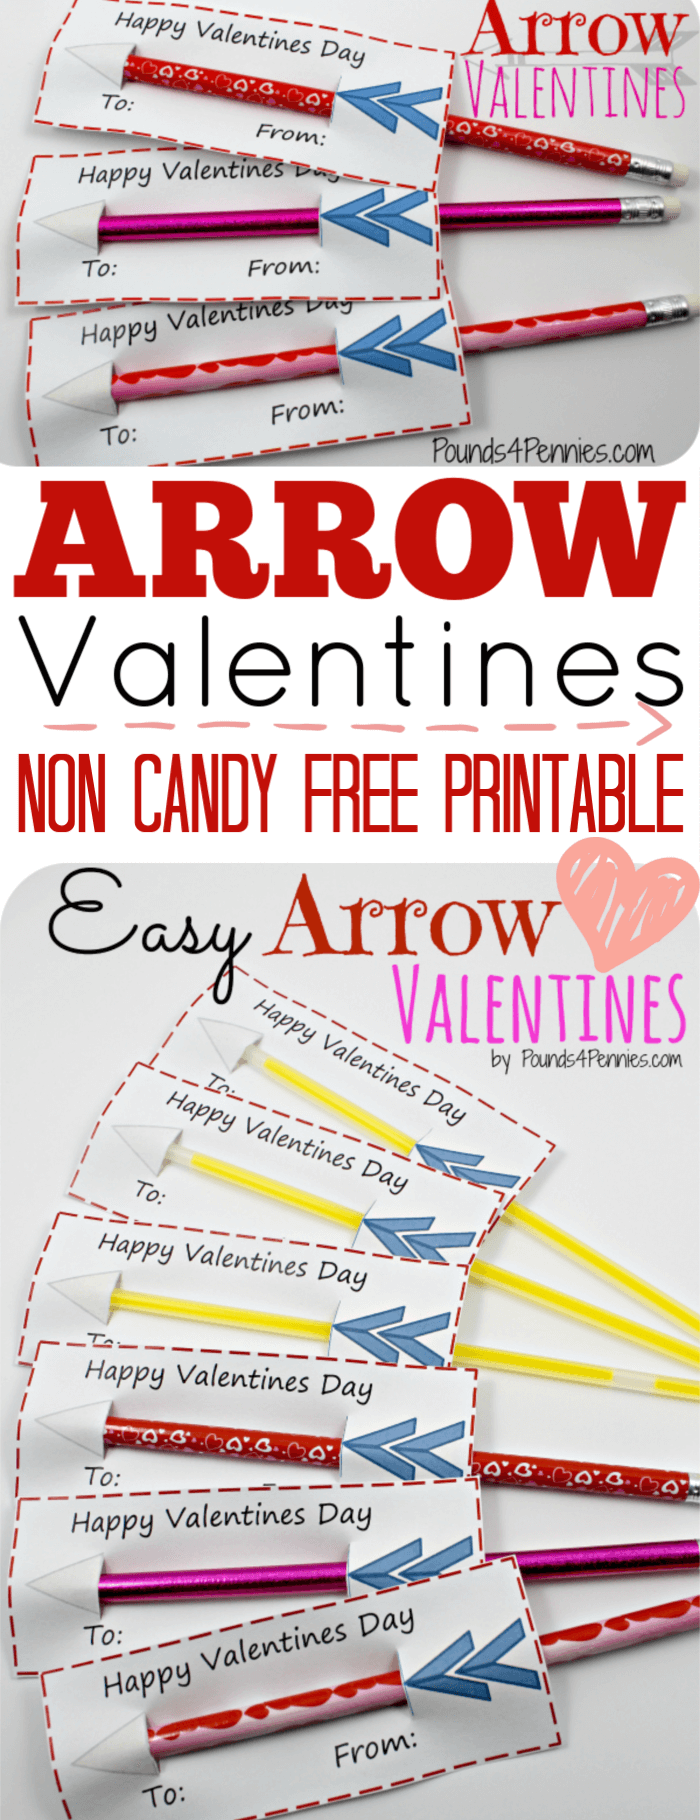 Non Candy Valentine Card Printable with Pencils. Pencil Valentines day card.